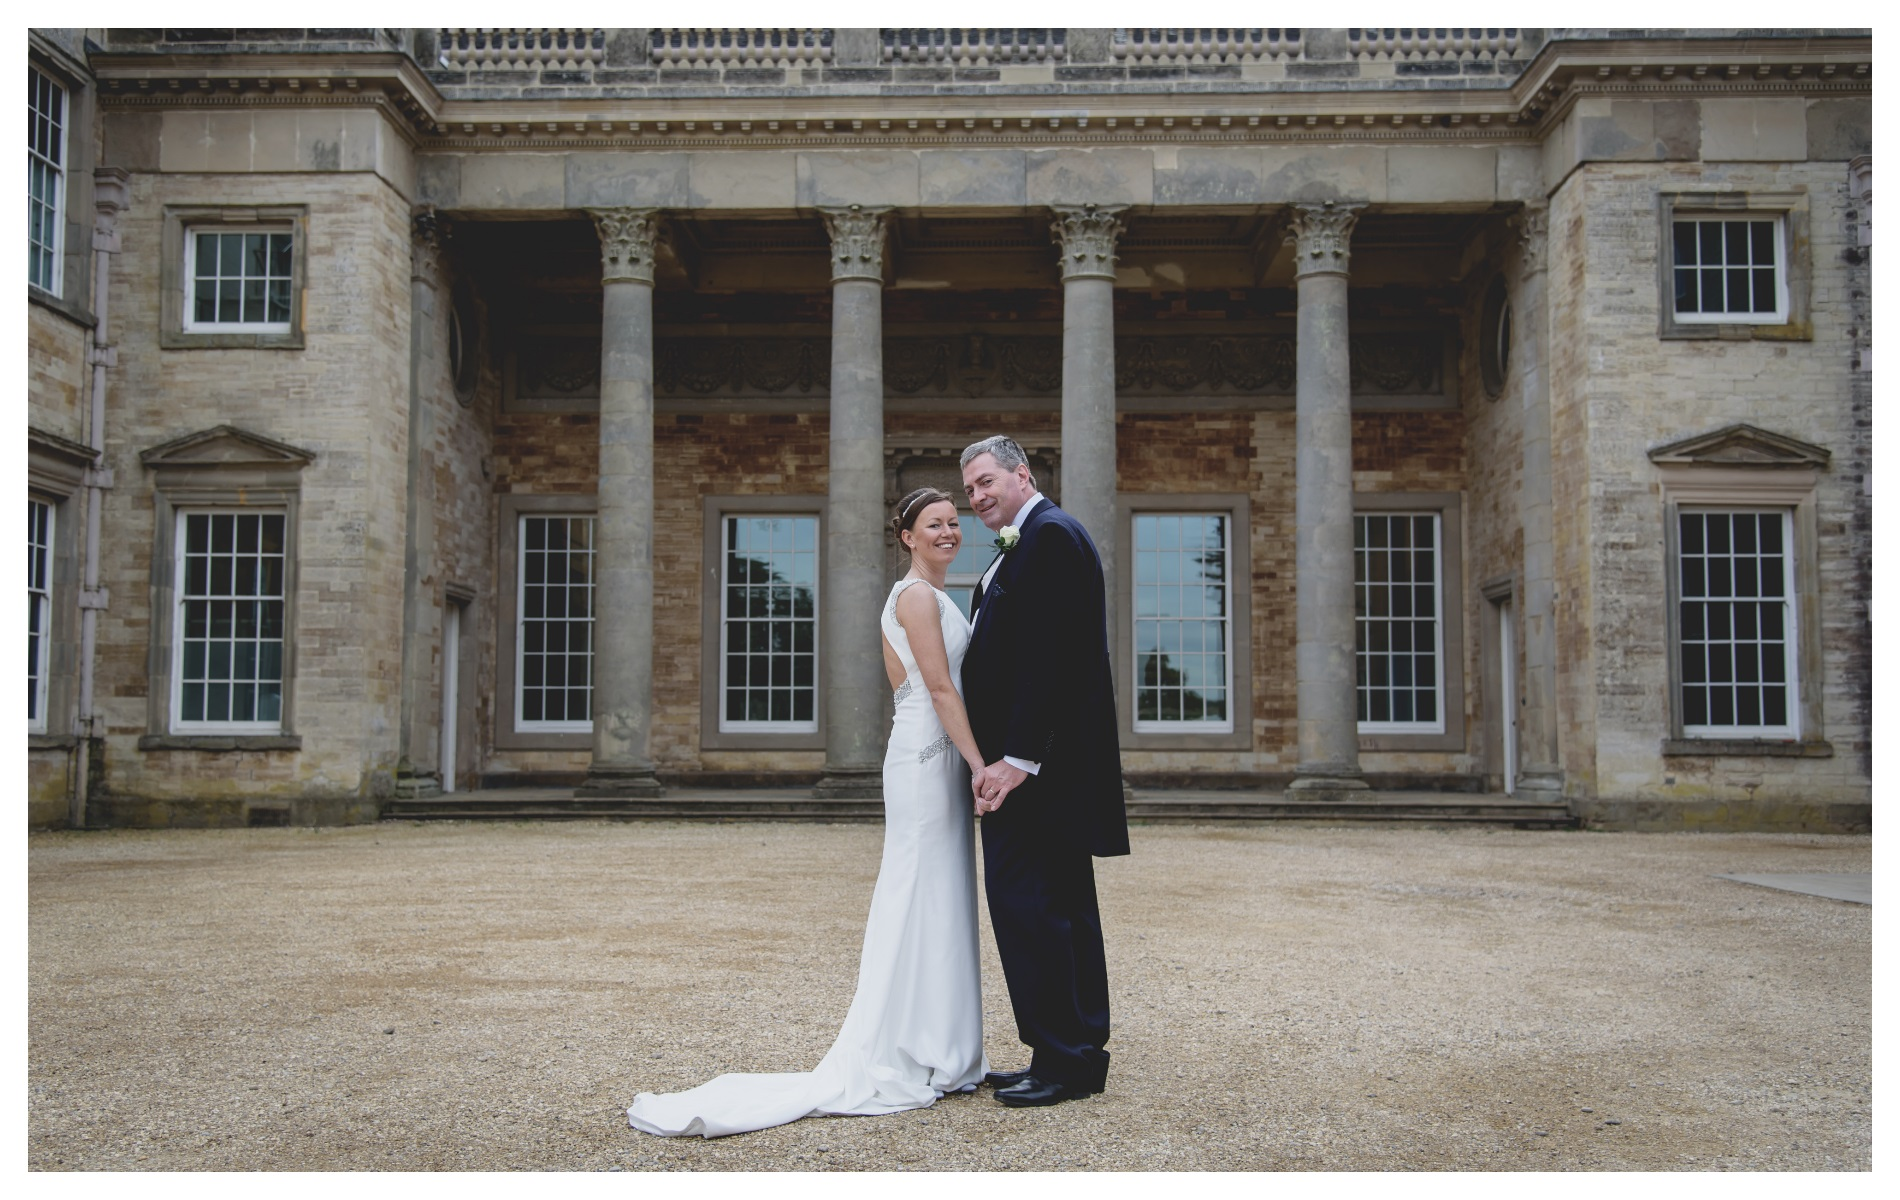 Compton Verney Wedding Photography by Chris Fossey Photography Claire 13